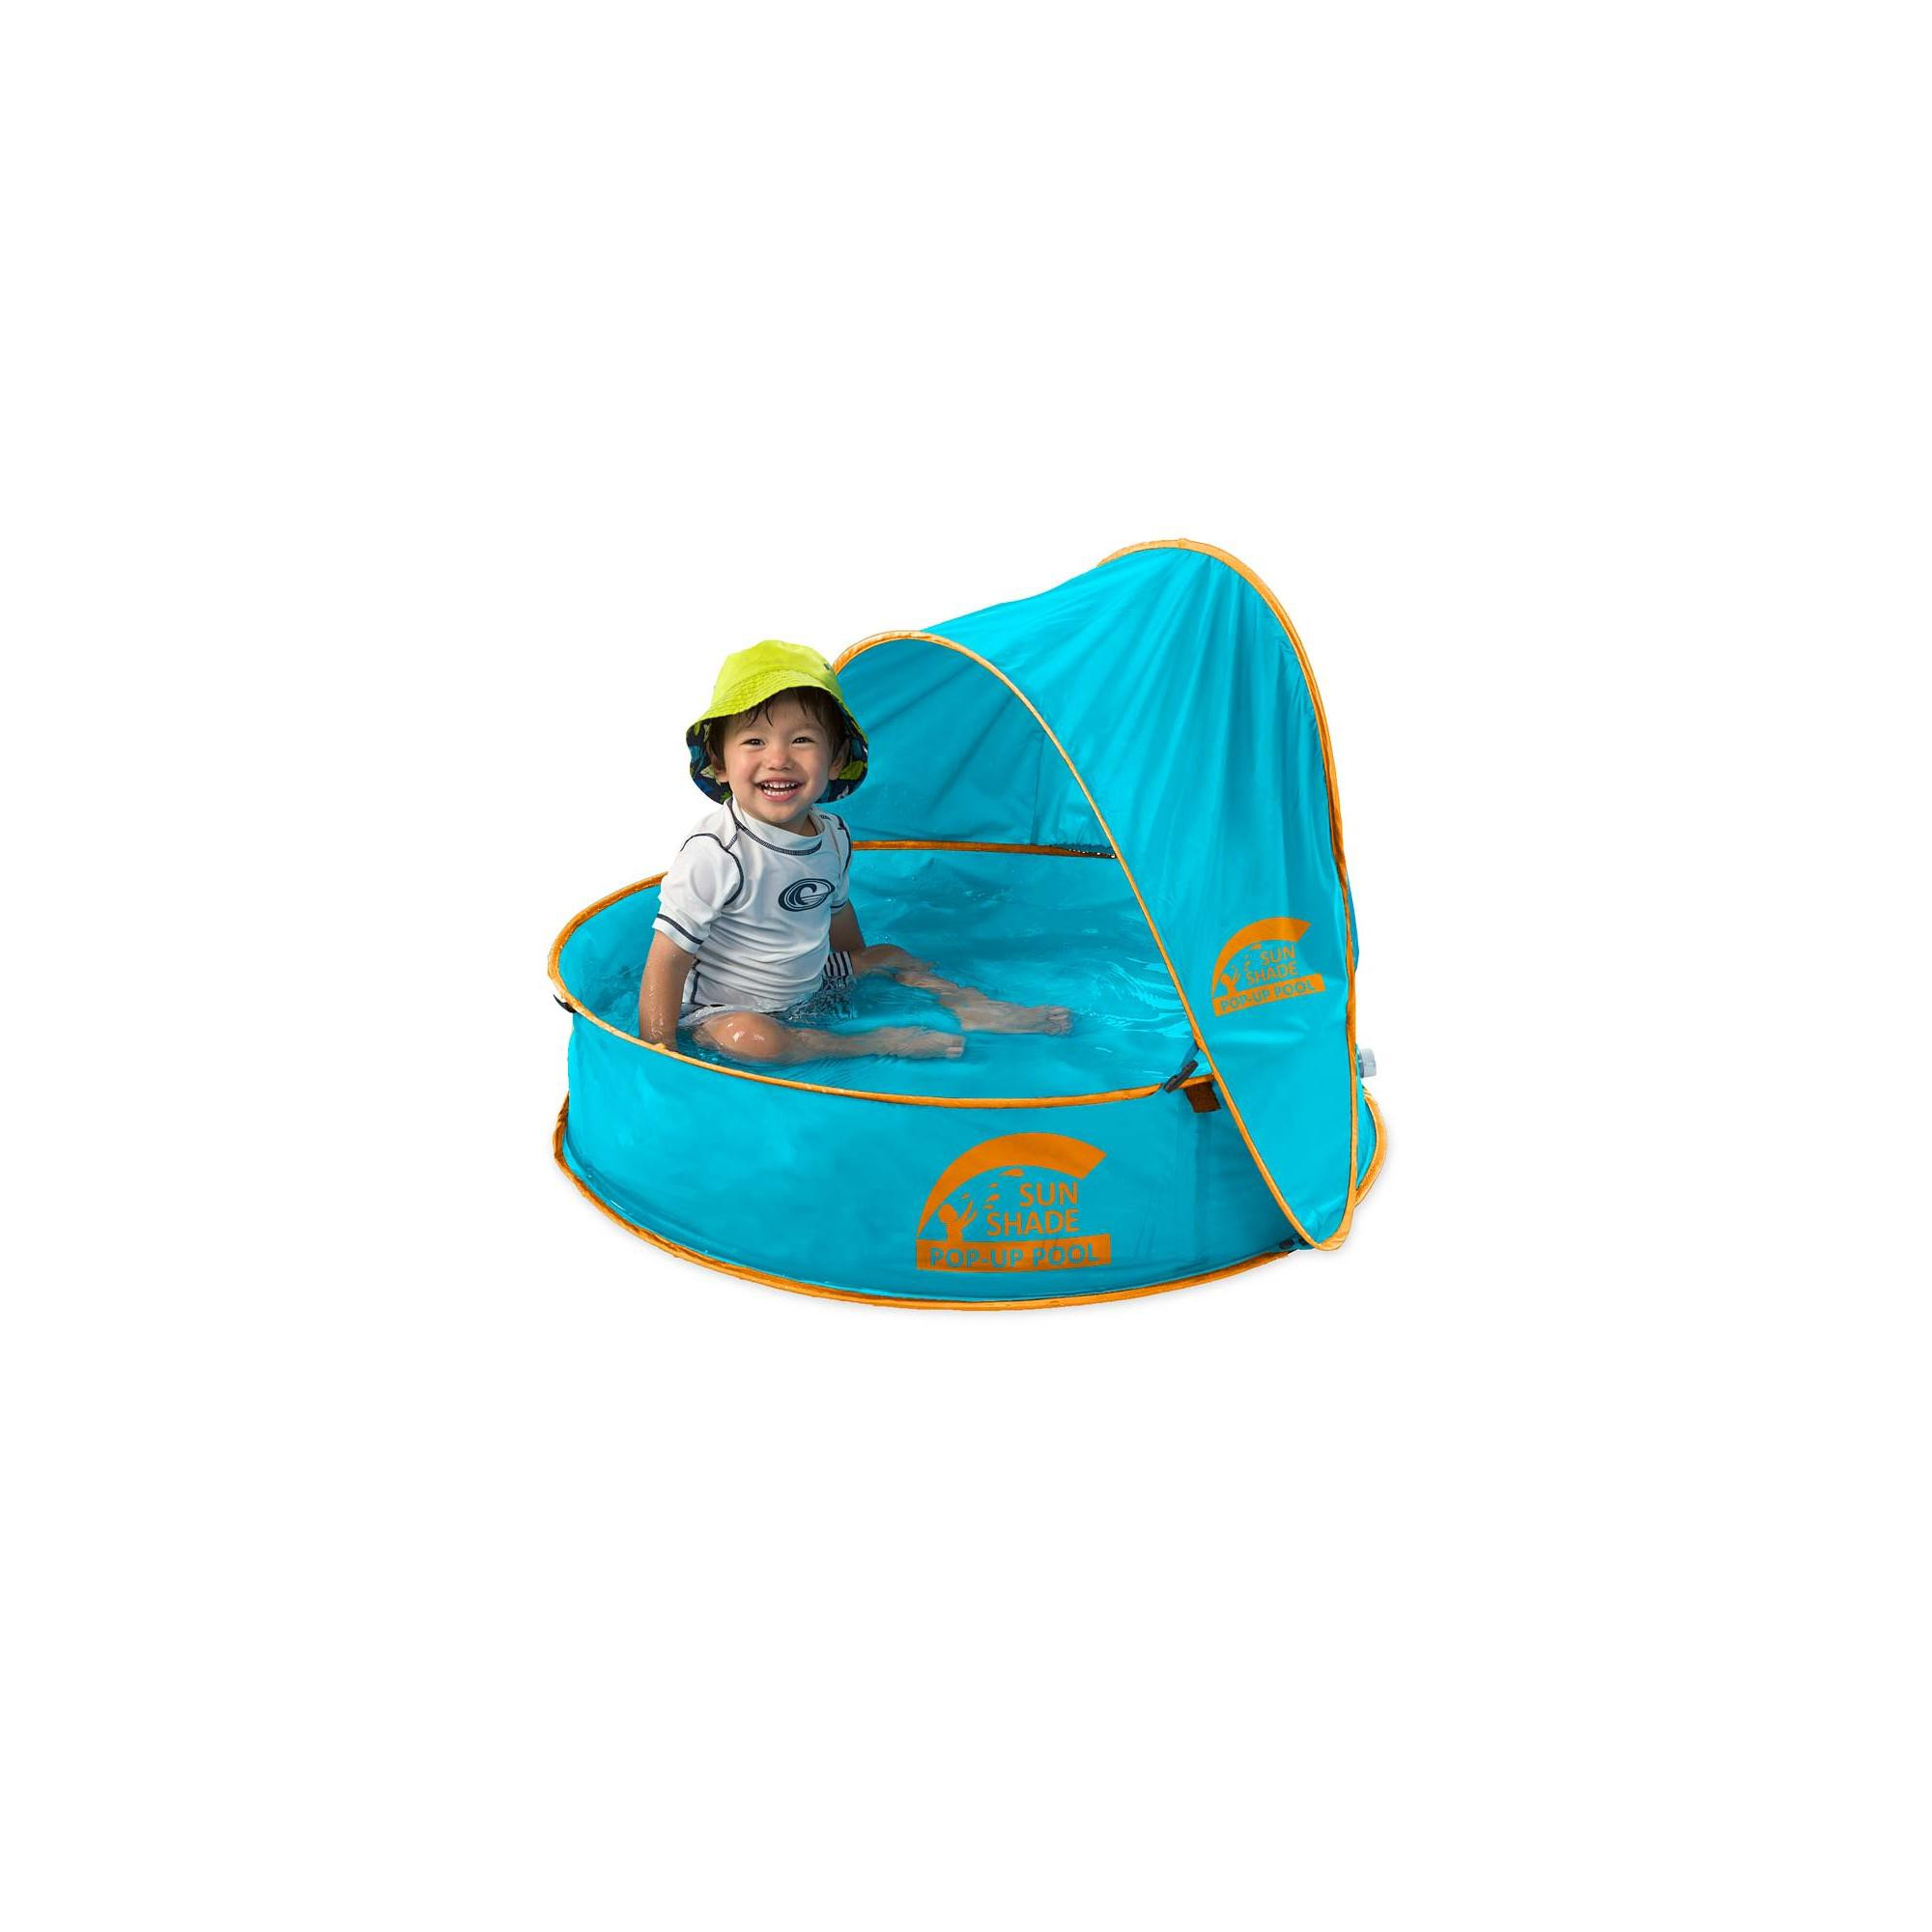 Sunshade Pop Up Portable Pool For